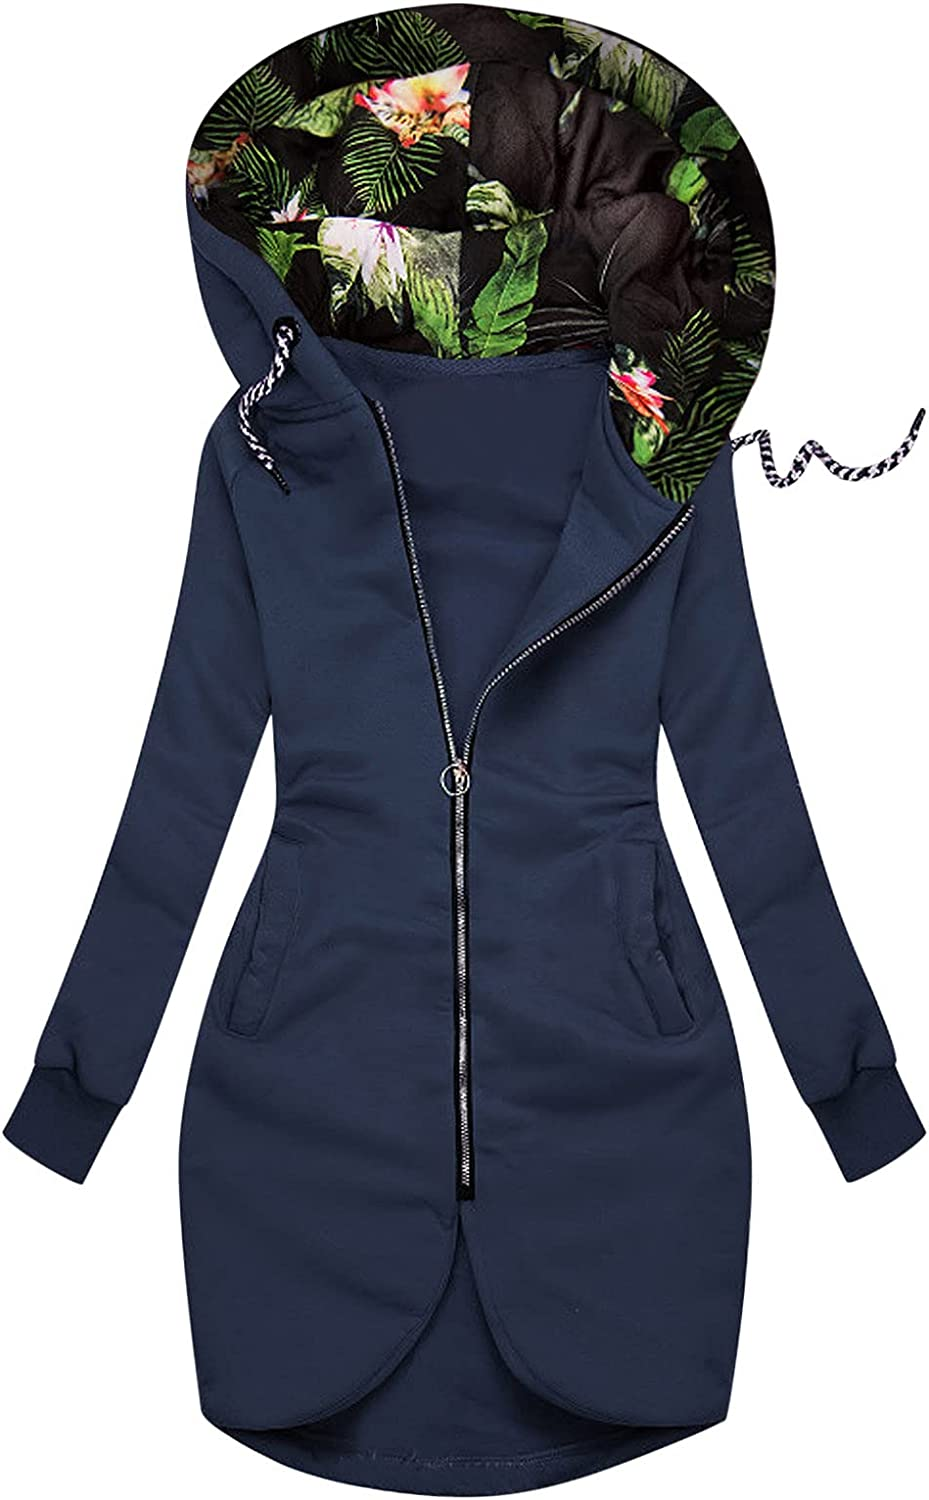 YRAETENM Womens Long Sleeve Tops Zip Up Hoodies Floral Print Jackets Plus Size Trench Raincoat Casual Tunic Blouse